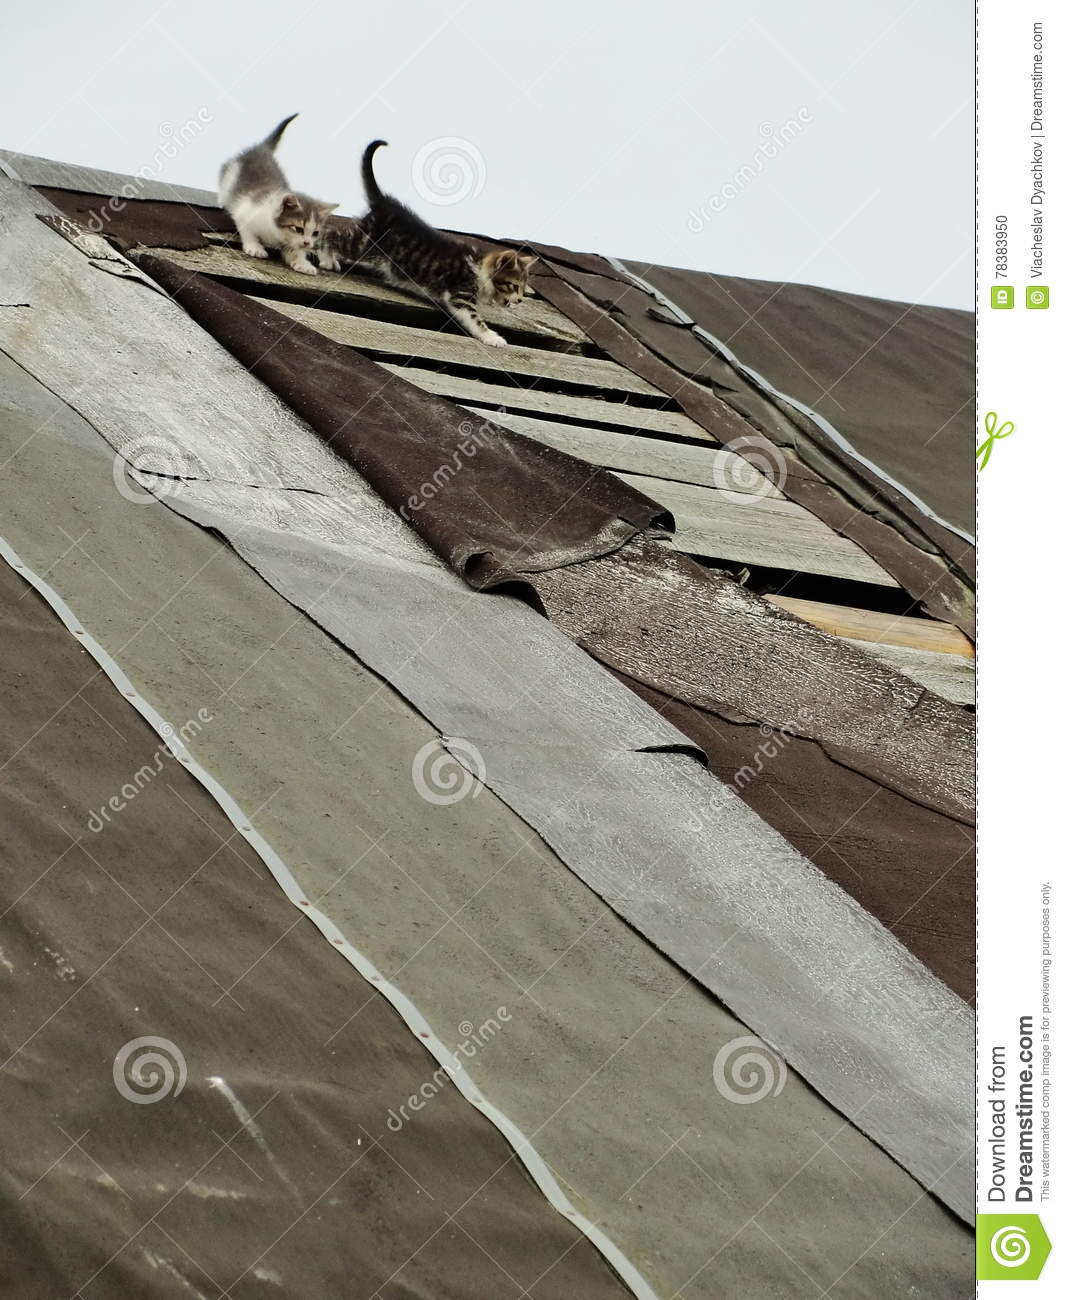 Young inexperienced shy wild kittens on the roof of an old rustic barn. A pair of pitiable homeless small cats.